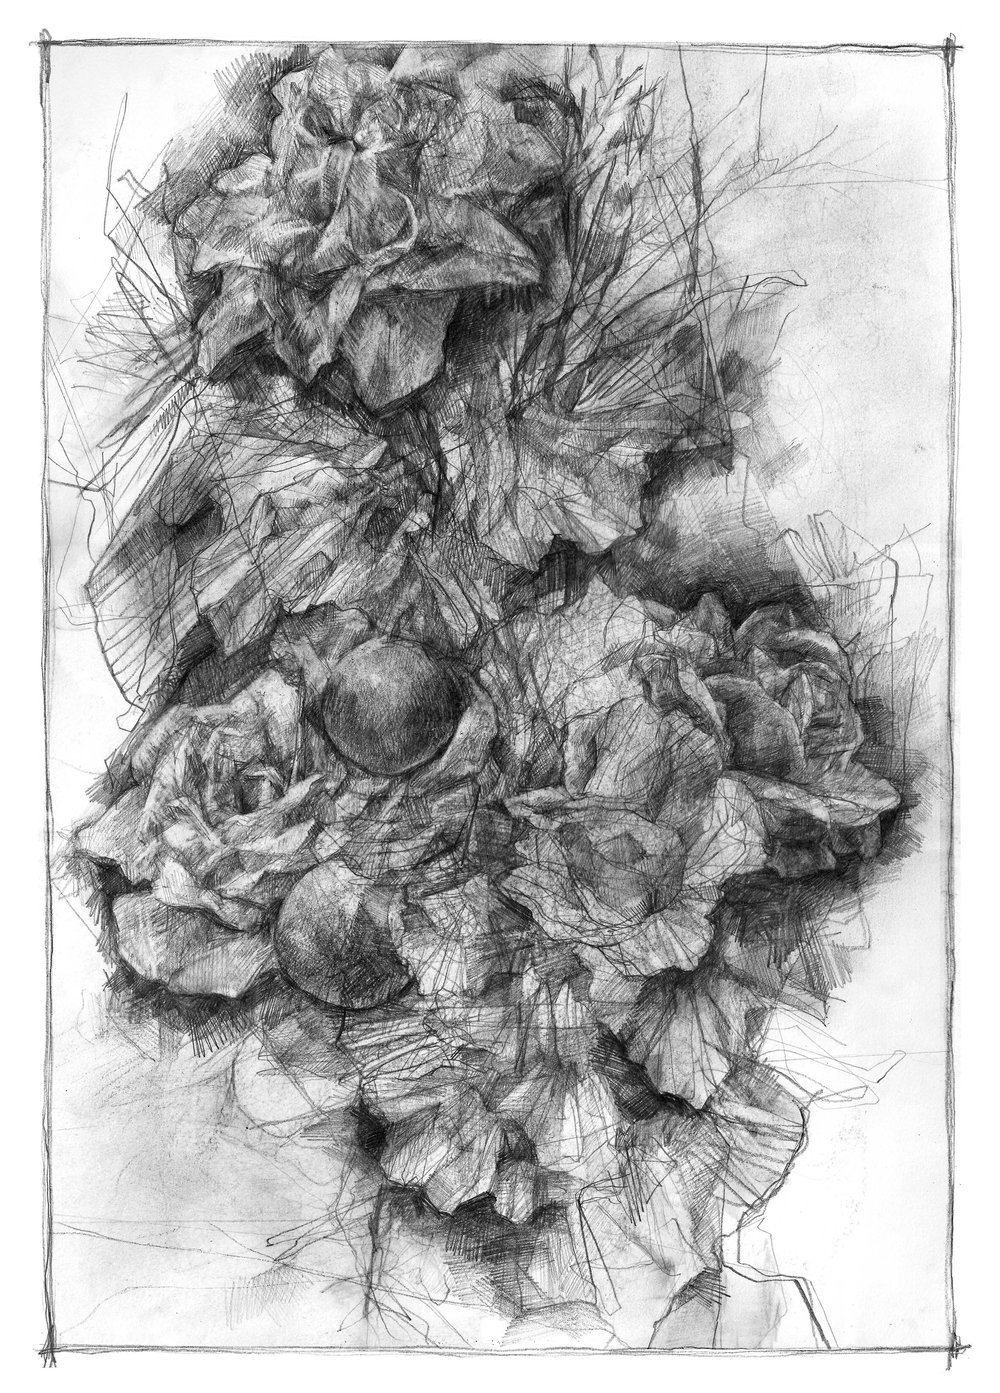 "FOLLYAGE  Graphite on paper, 9.7 x 14"", 2013"